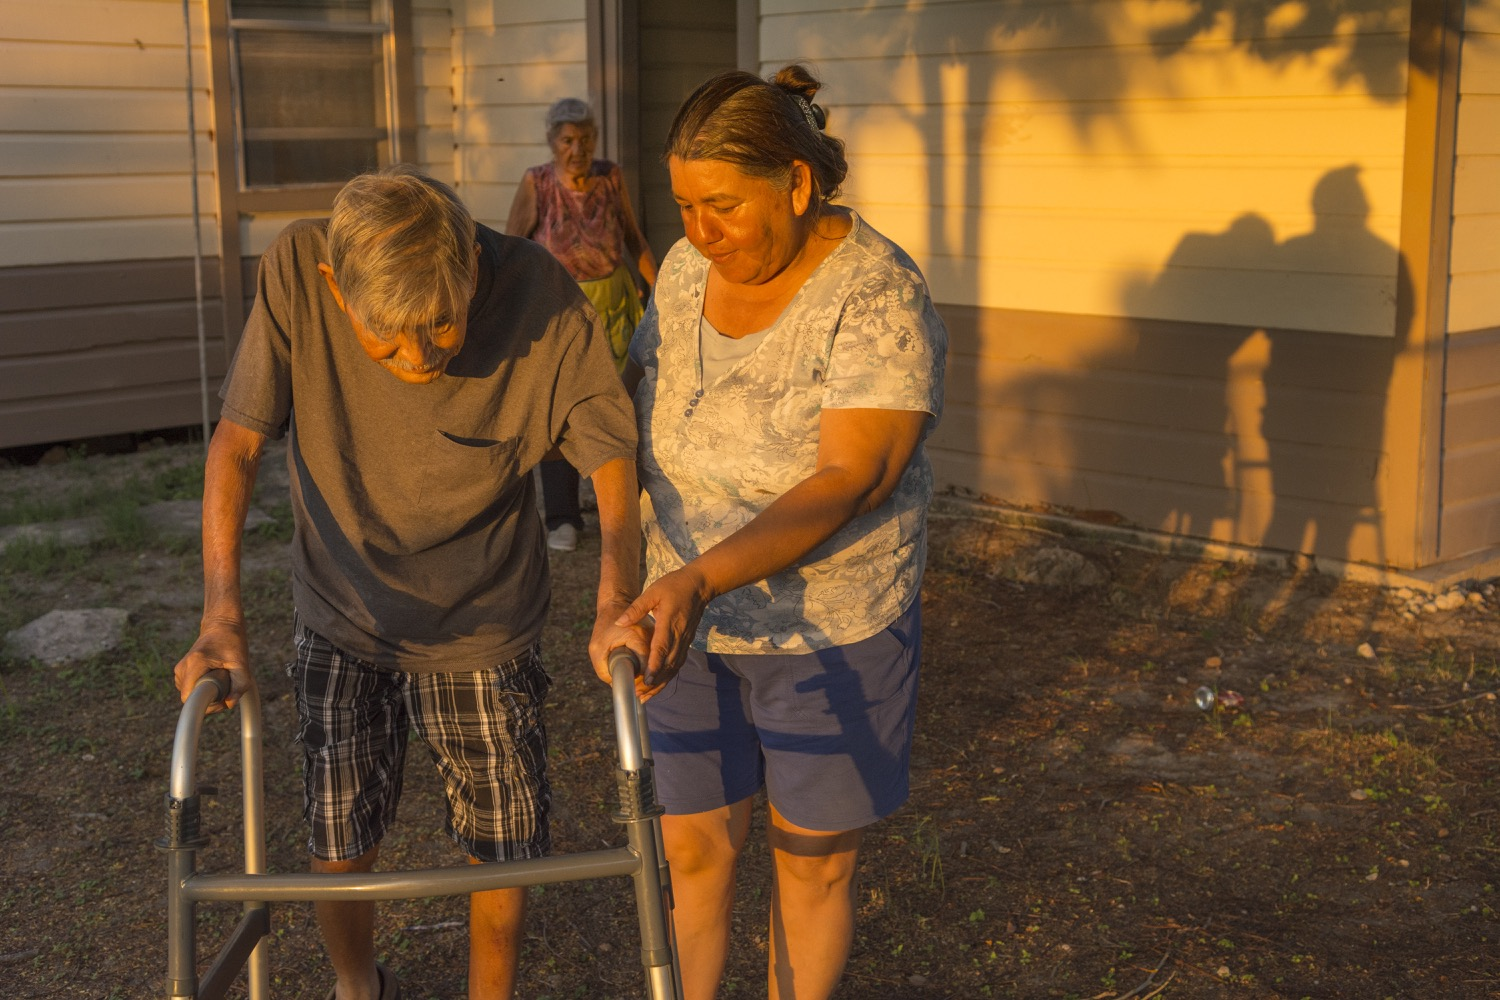 Maria Martinez helps her father, Hermenegildo, walk around their home as Juliana Martinez follows behind. After Hermenegildo suffered a stroke leaving him unable to work or care for himself, Maria took over his job as a field supervisor and helps him around the house they all share.©2018/Jerry Redfern